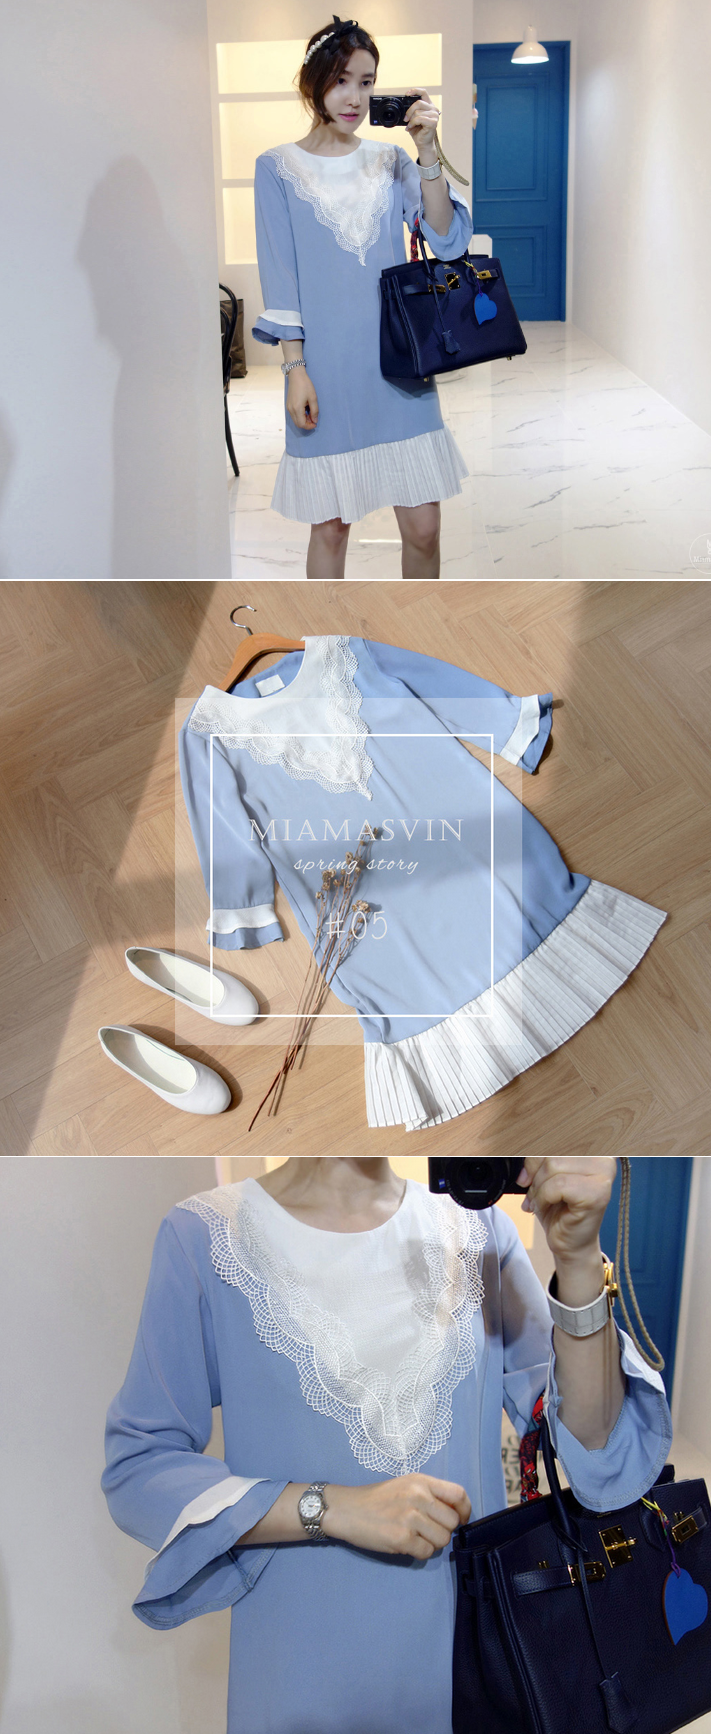 Sport a gorgeous casual look with this lovely shift dress. / $ 50.10 / #miamasvin #koreanfashion